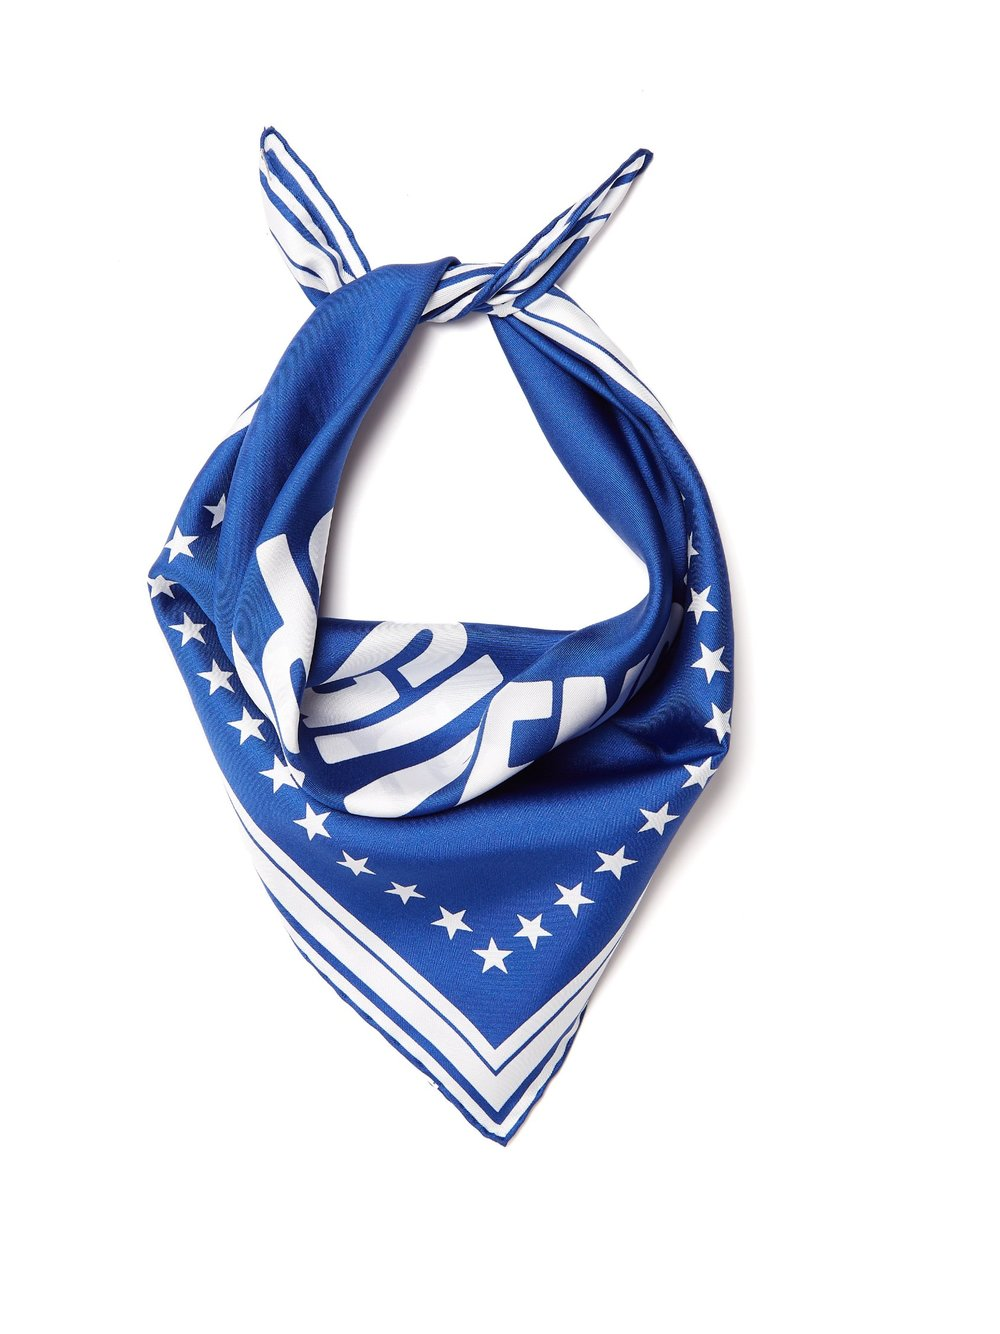 Silk twill scarf, £125 by Givenchy at Matches